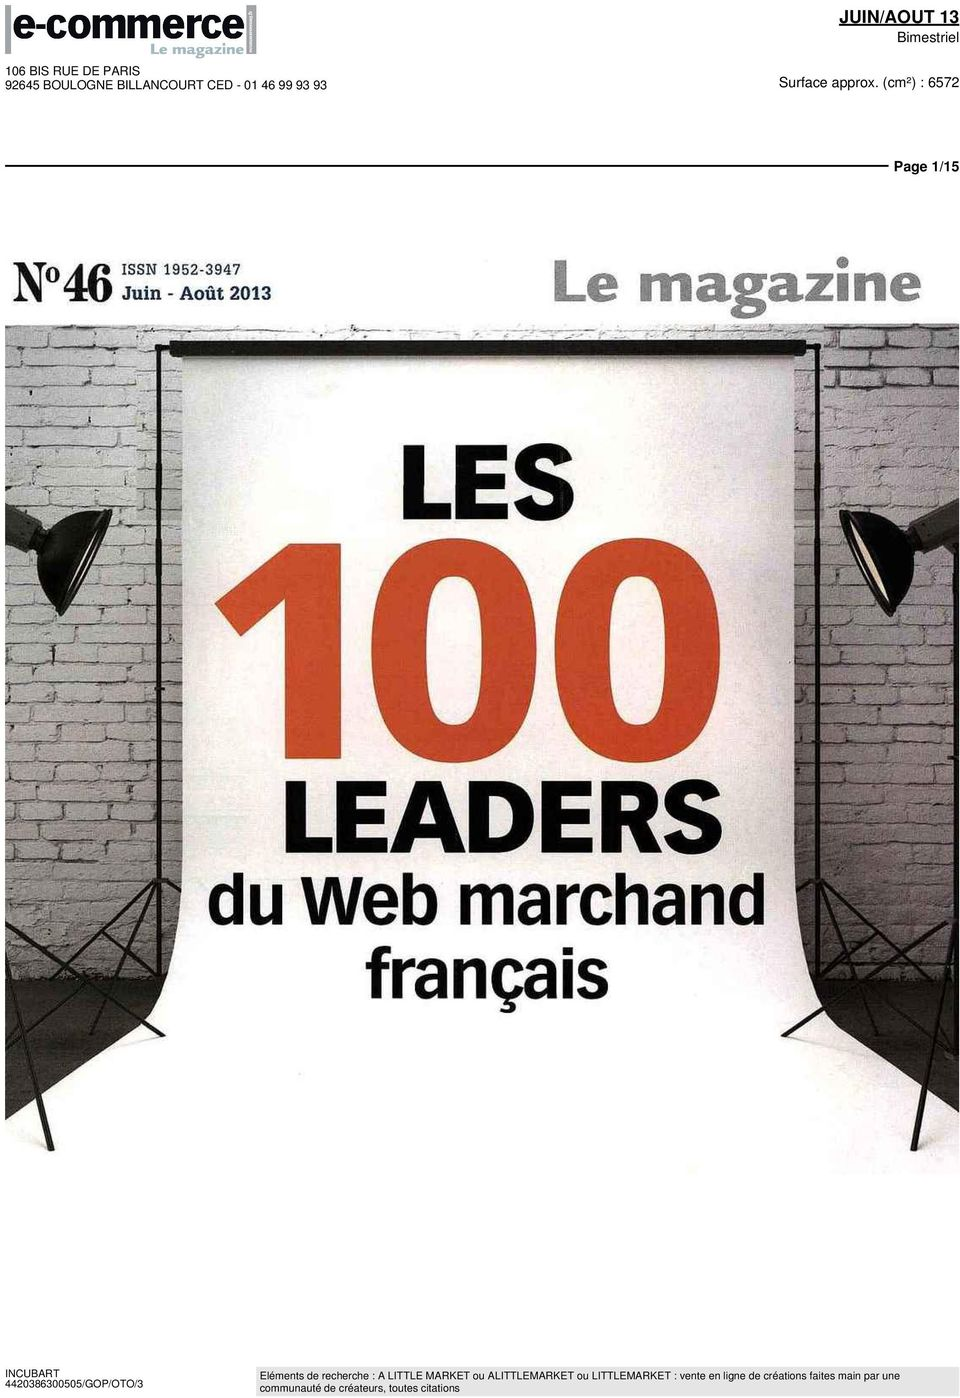 - Aût 01 Le magazine LES LEADERS du Web